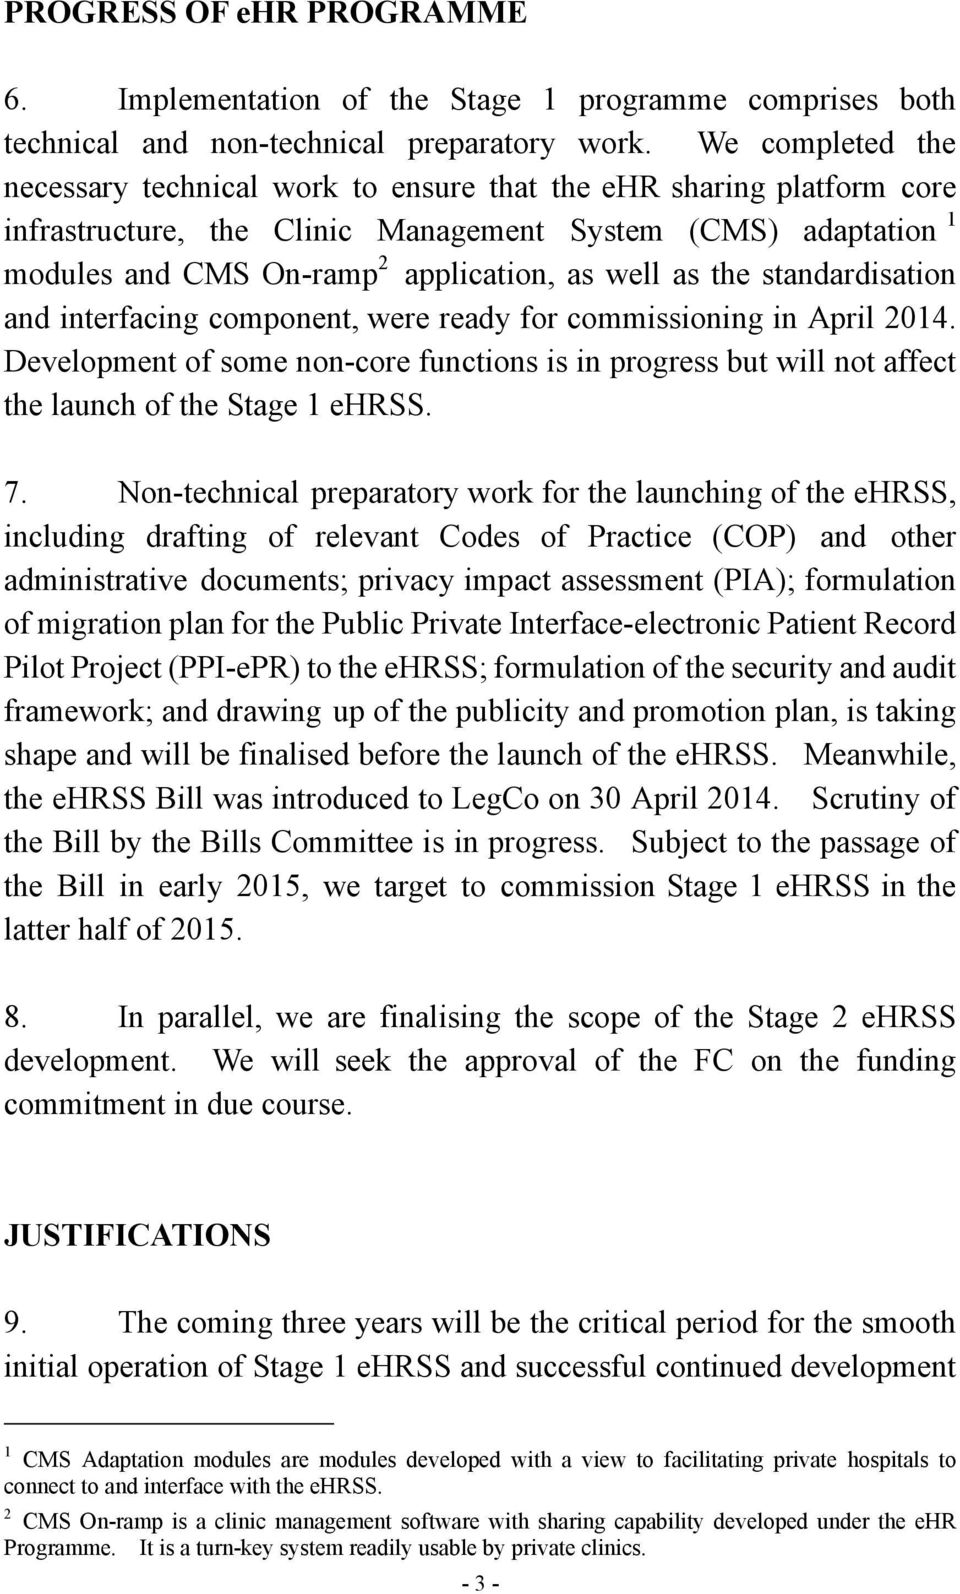 as the standardisation and interfacing component, were ready for commissioning in April 2014. Development of some non-core functions is in progress but will not affect the launch of the Stage 1 ehrss.